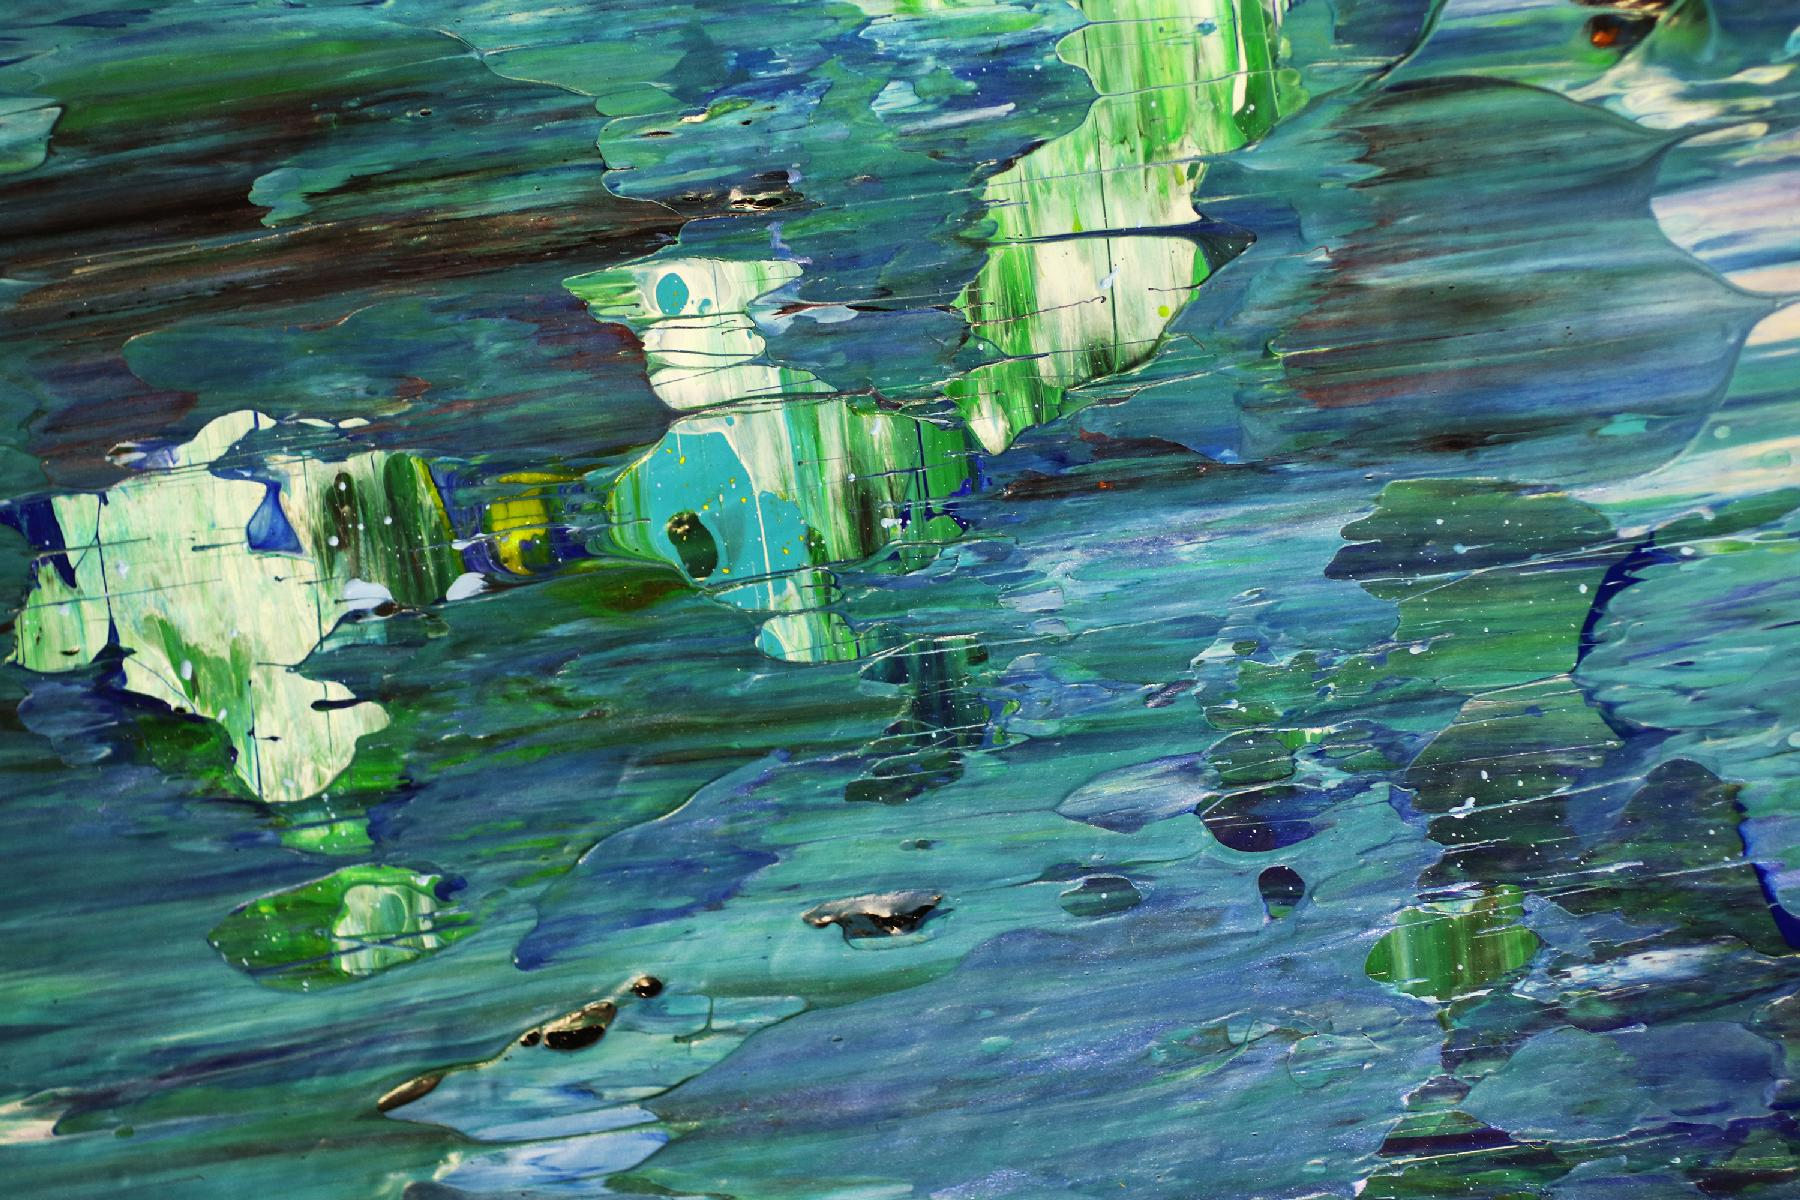 Detail - Blue satin waves 2 by Nestor Toro - 2020 - SOLD